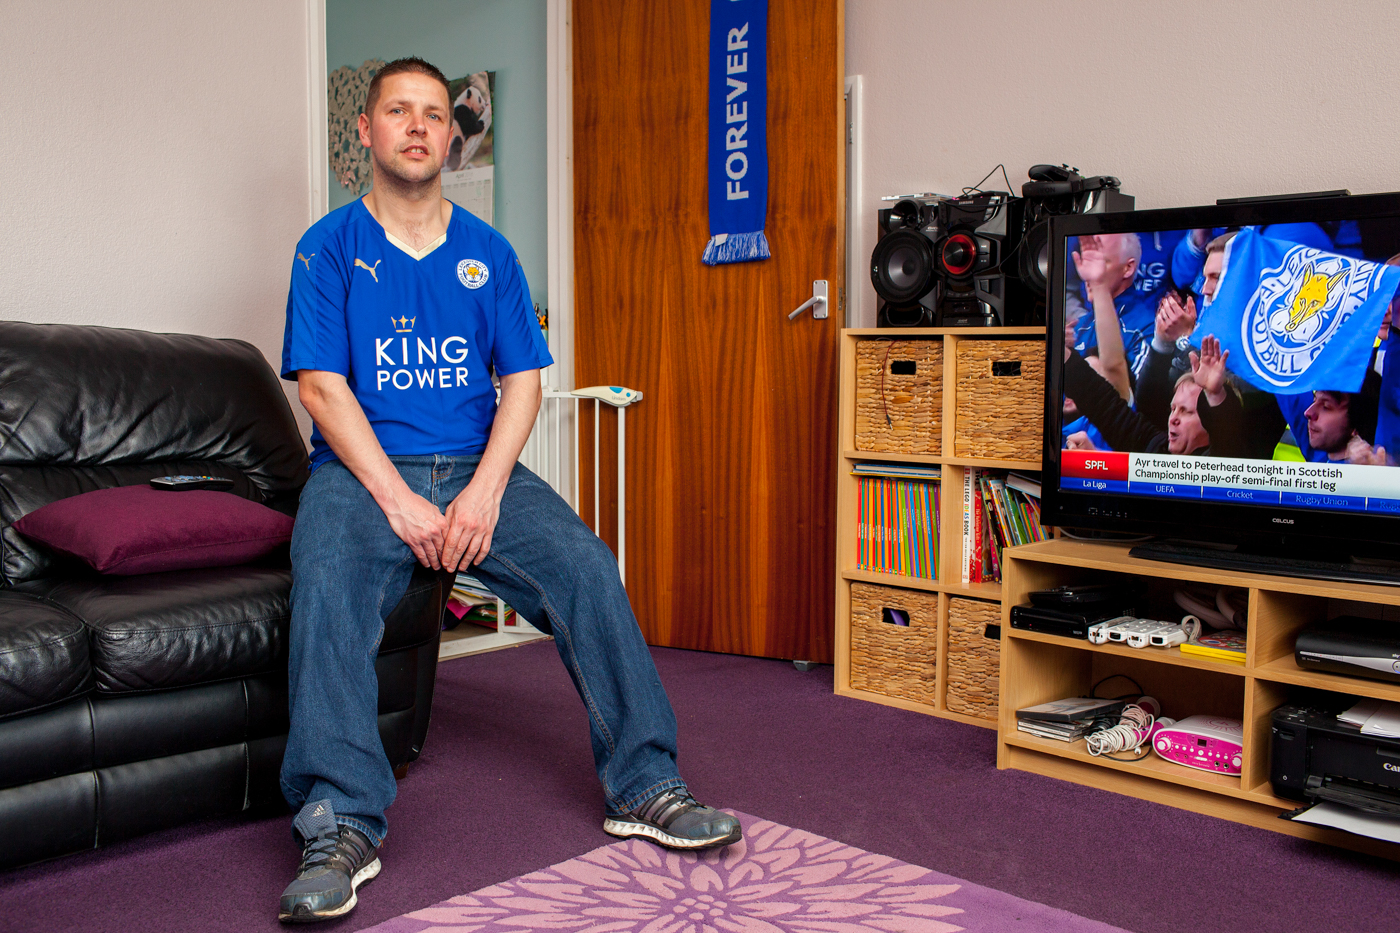 LEICESTER, UK MAY 2016Craig Sawbridge, a Leicester City fanatic at his home in the city.On the 2nd May 2016, Leicester City football club became champions of England for the first time in their 132 year history.Leicester has been dubbed as most multicultural diversified city in England, thanks to scores of people that have flocked the city and who have hailed from different parts of the world. According to the Leicester city council, the city has the highest number of immigrants who have sought both temporary and permanent residence in England. Majority of these immigrants are people who have left their home countries in pursuit of job opportunities in England.  Photo by Peter Dench/Getty Images Assignment for ESPN